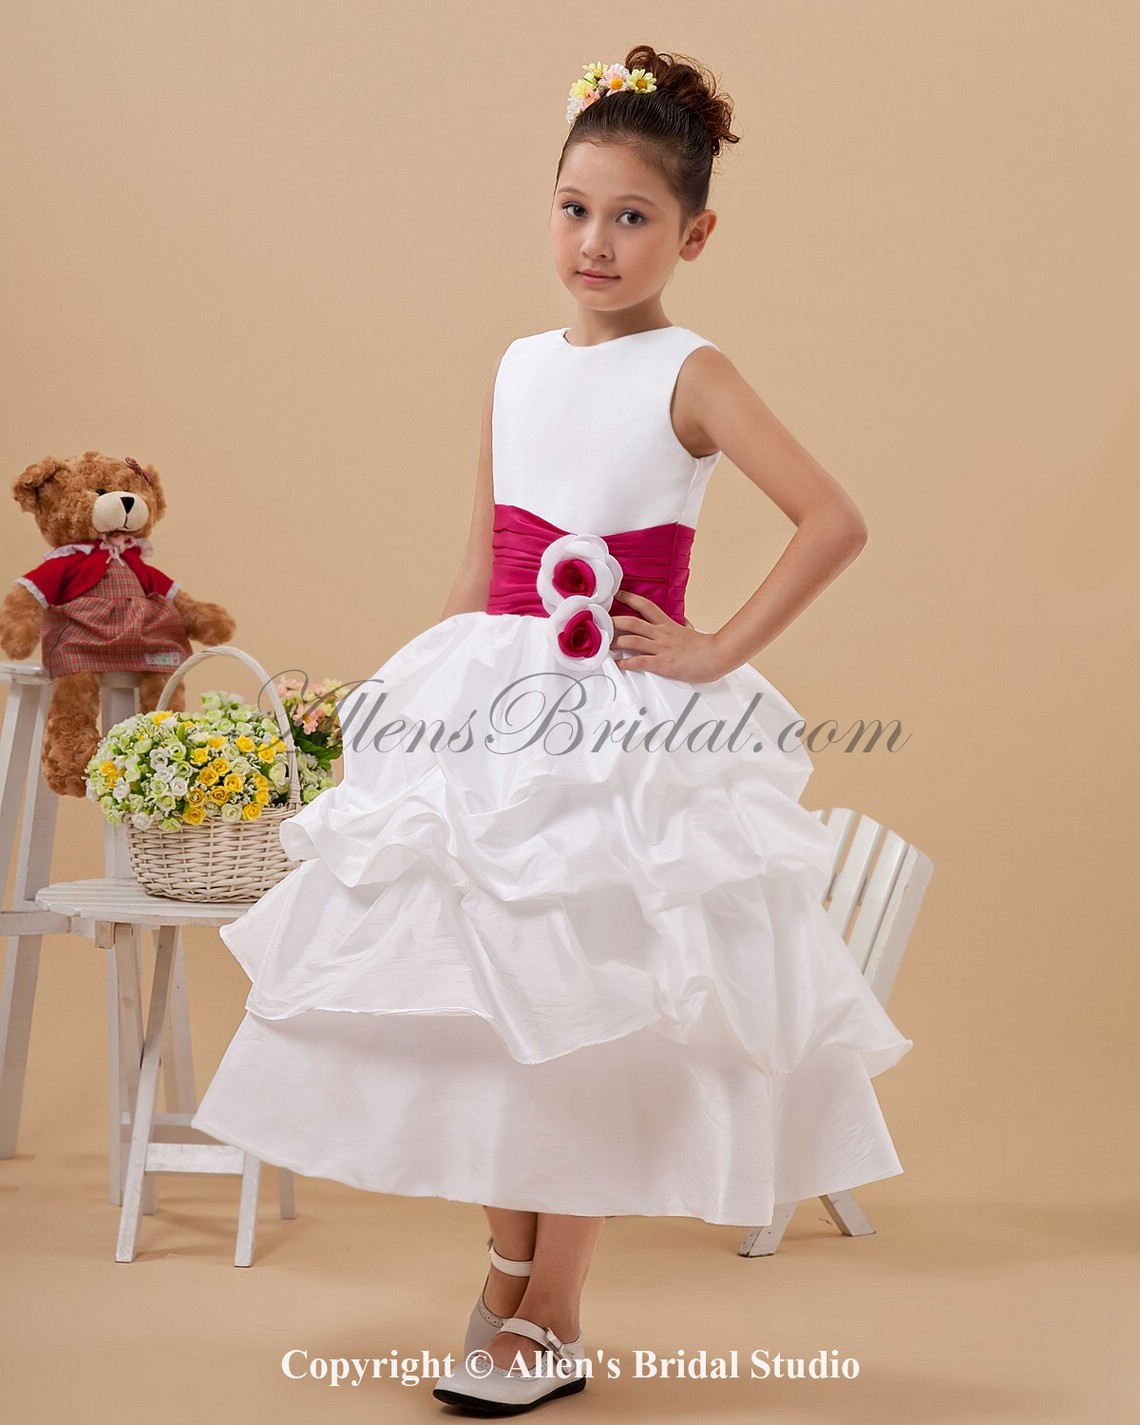 /1213-9730/satin-jewel-neckline-tea-length-ball-gown-flower-girl-dress.jpg